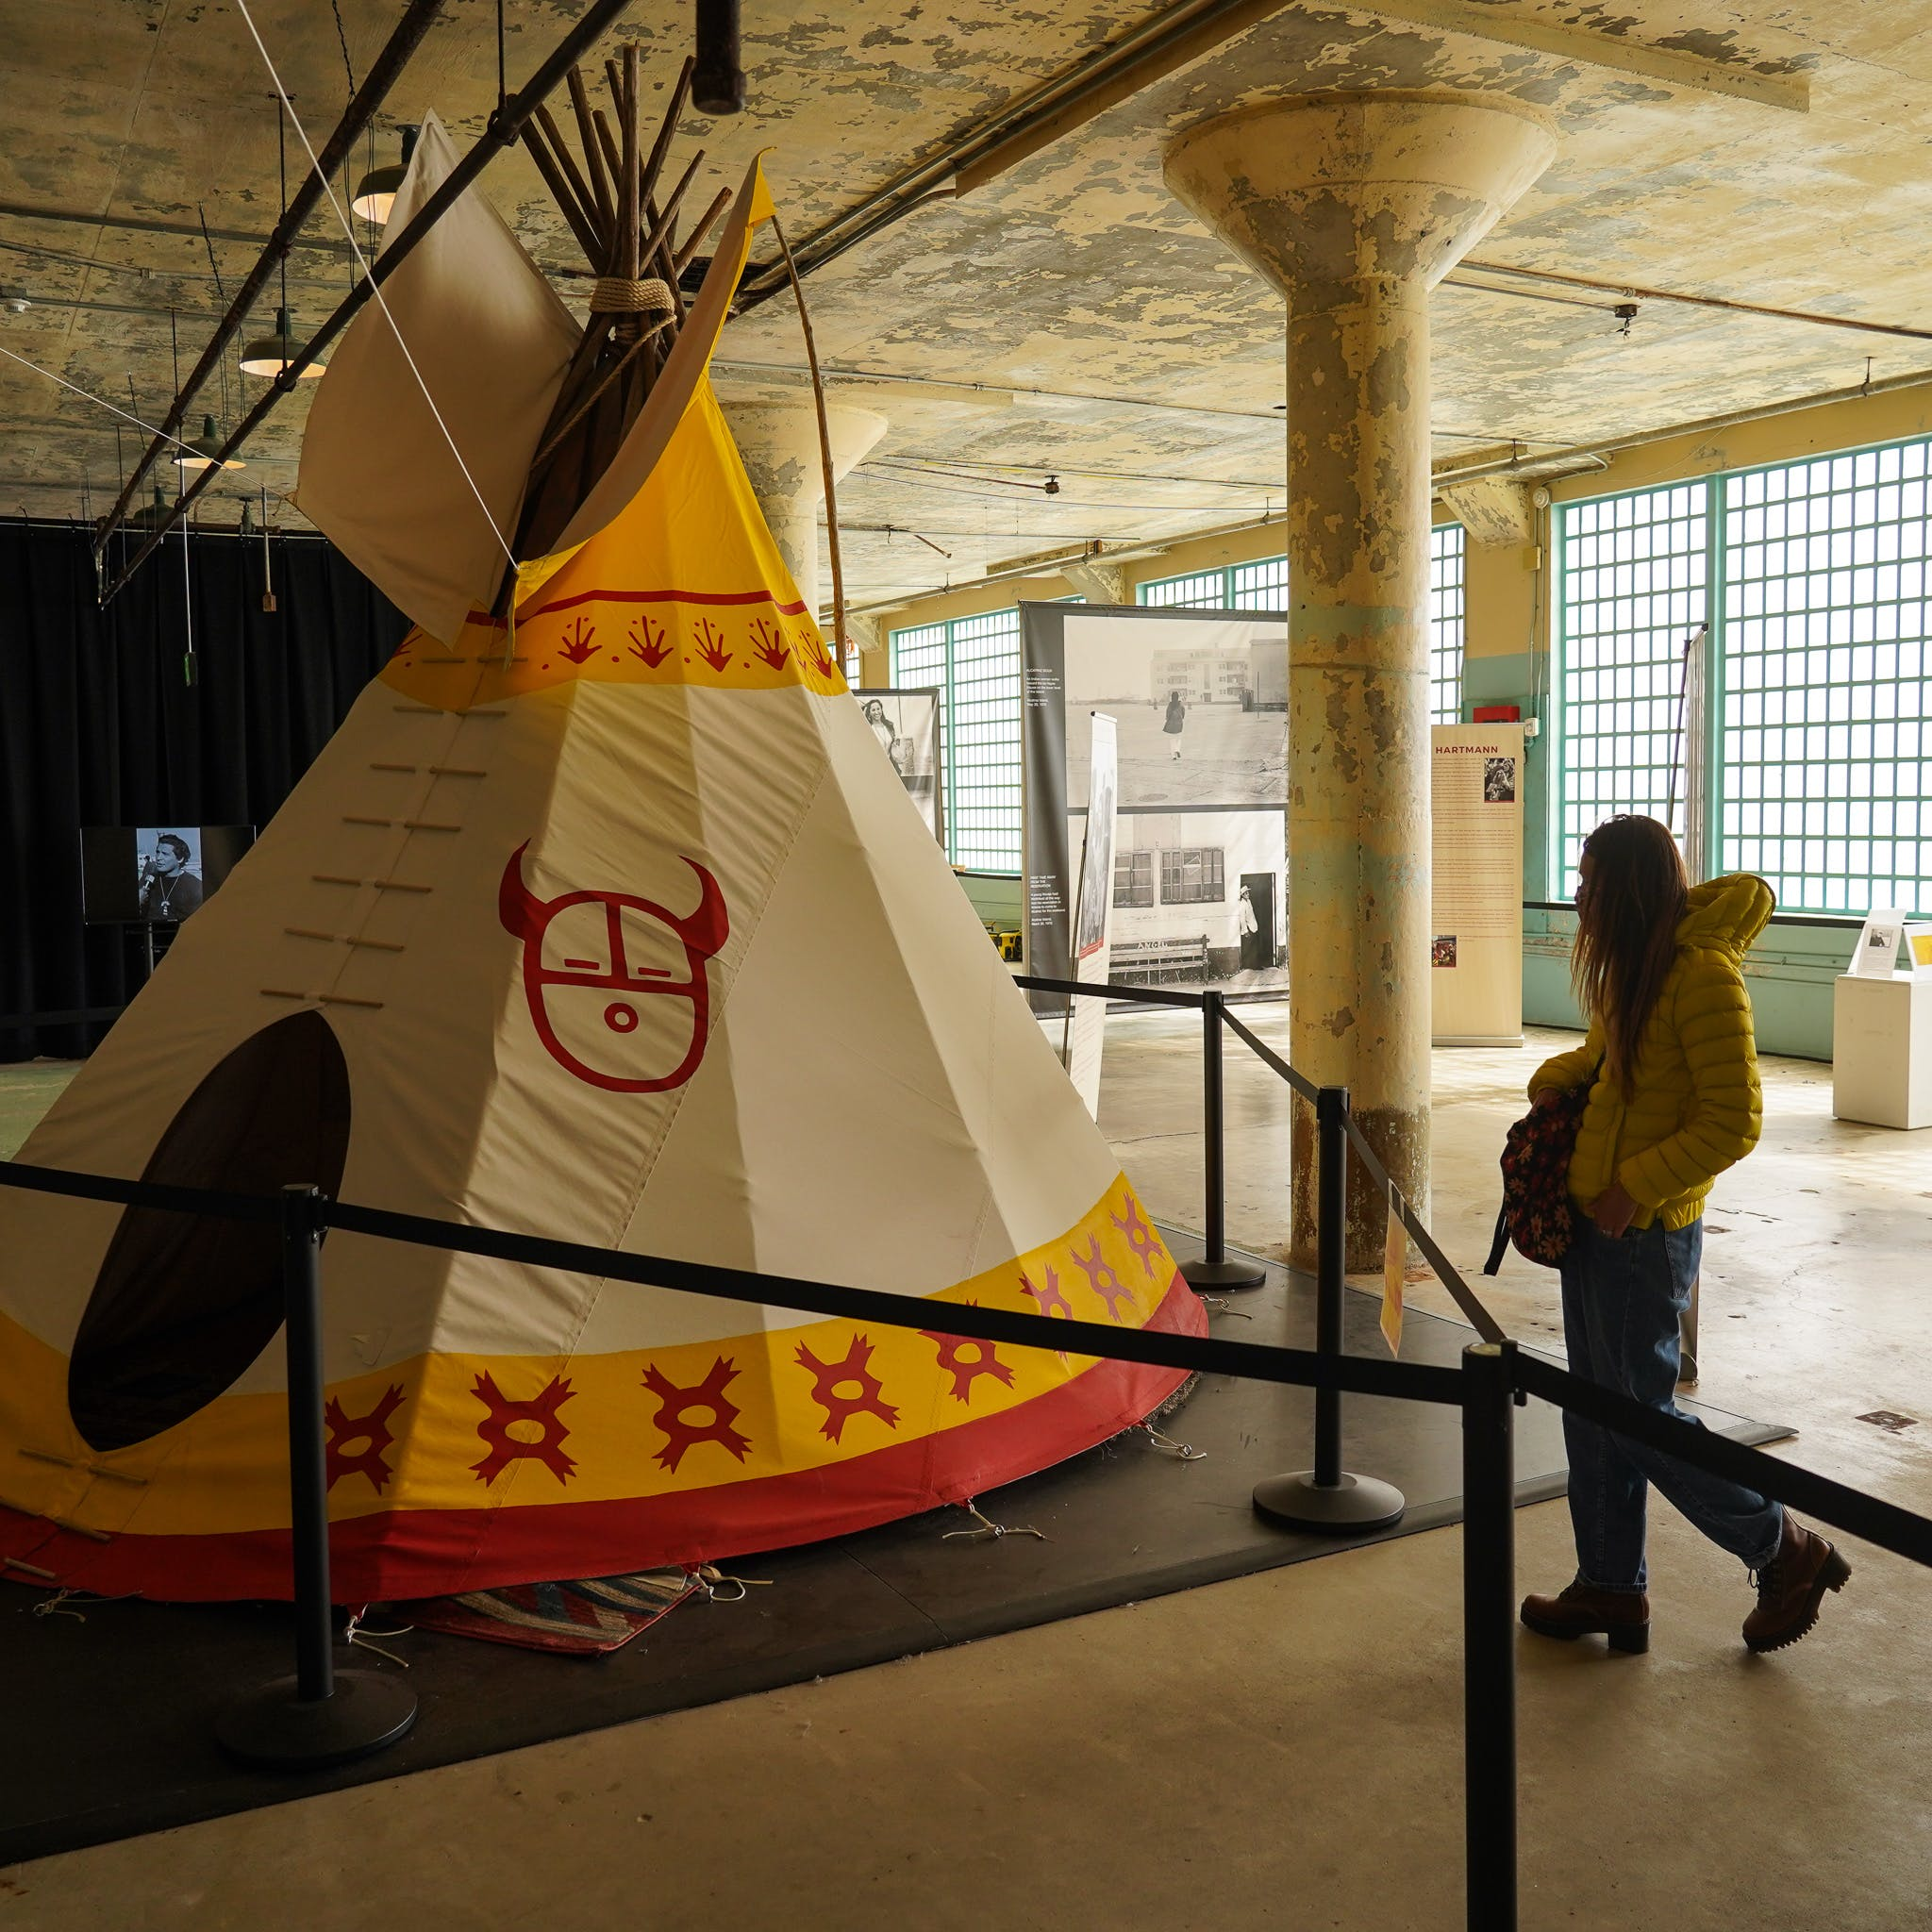 Woman looking at a teepee installation at the Red Power On Alcatraz exhibit on Alcatraz Island